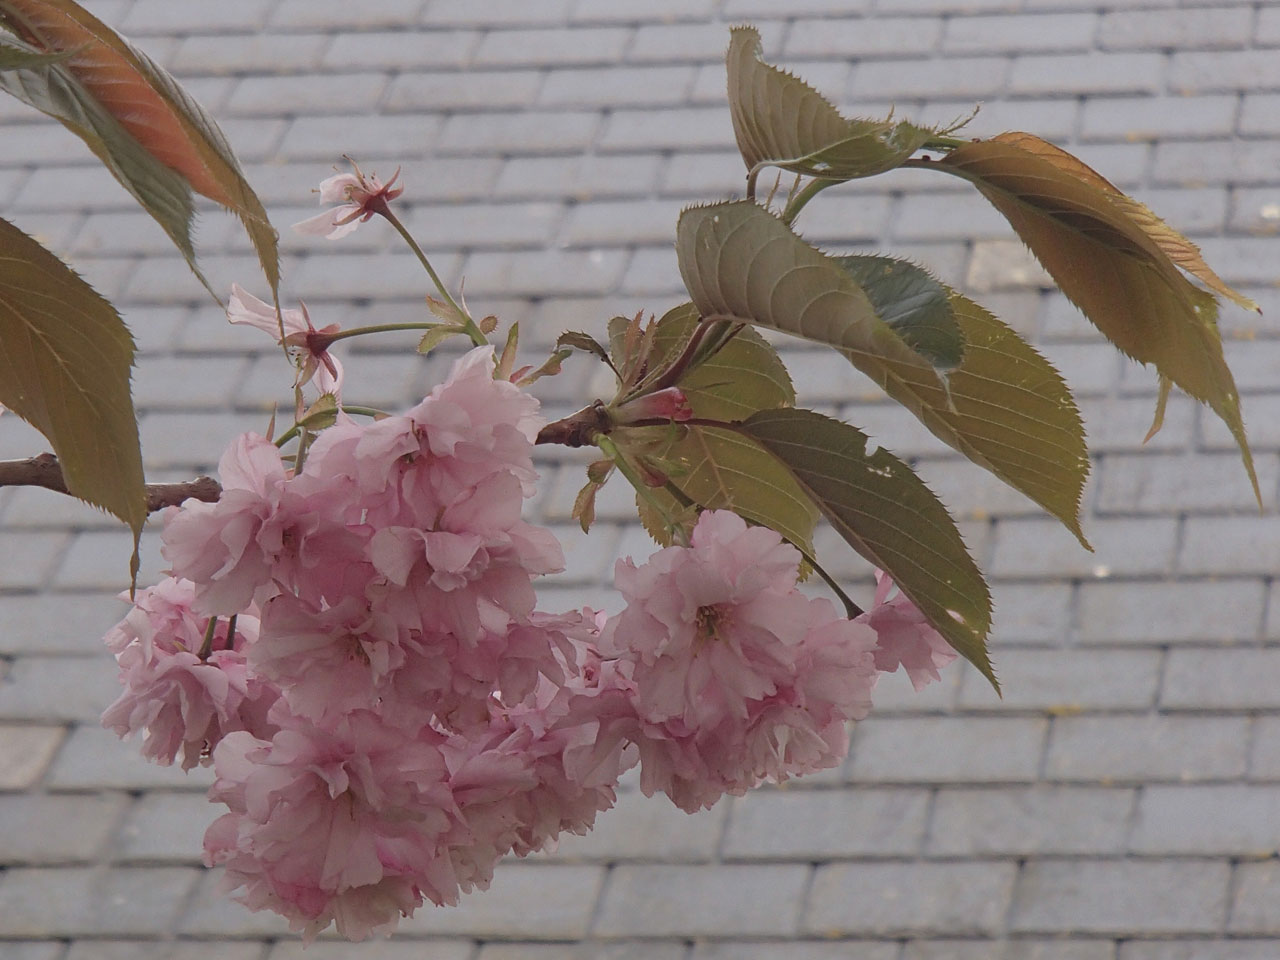 Cherry blossom against slate roof